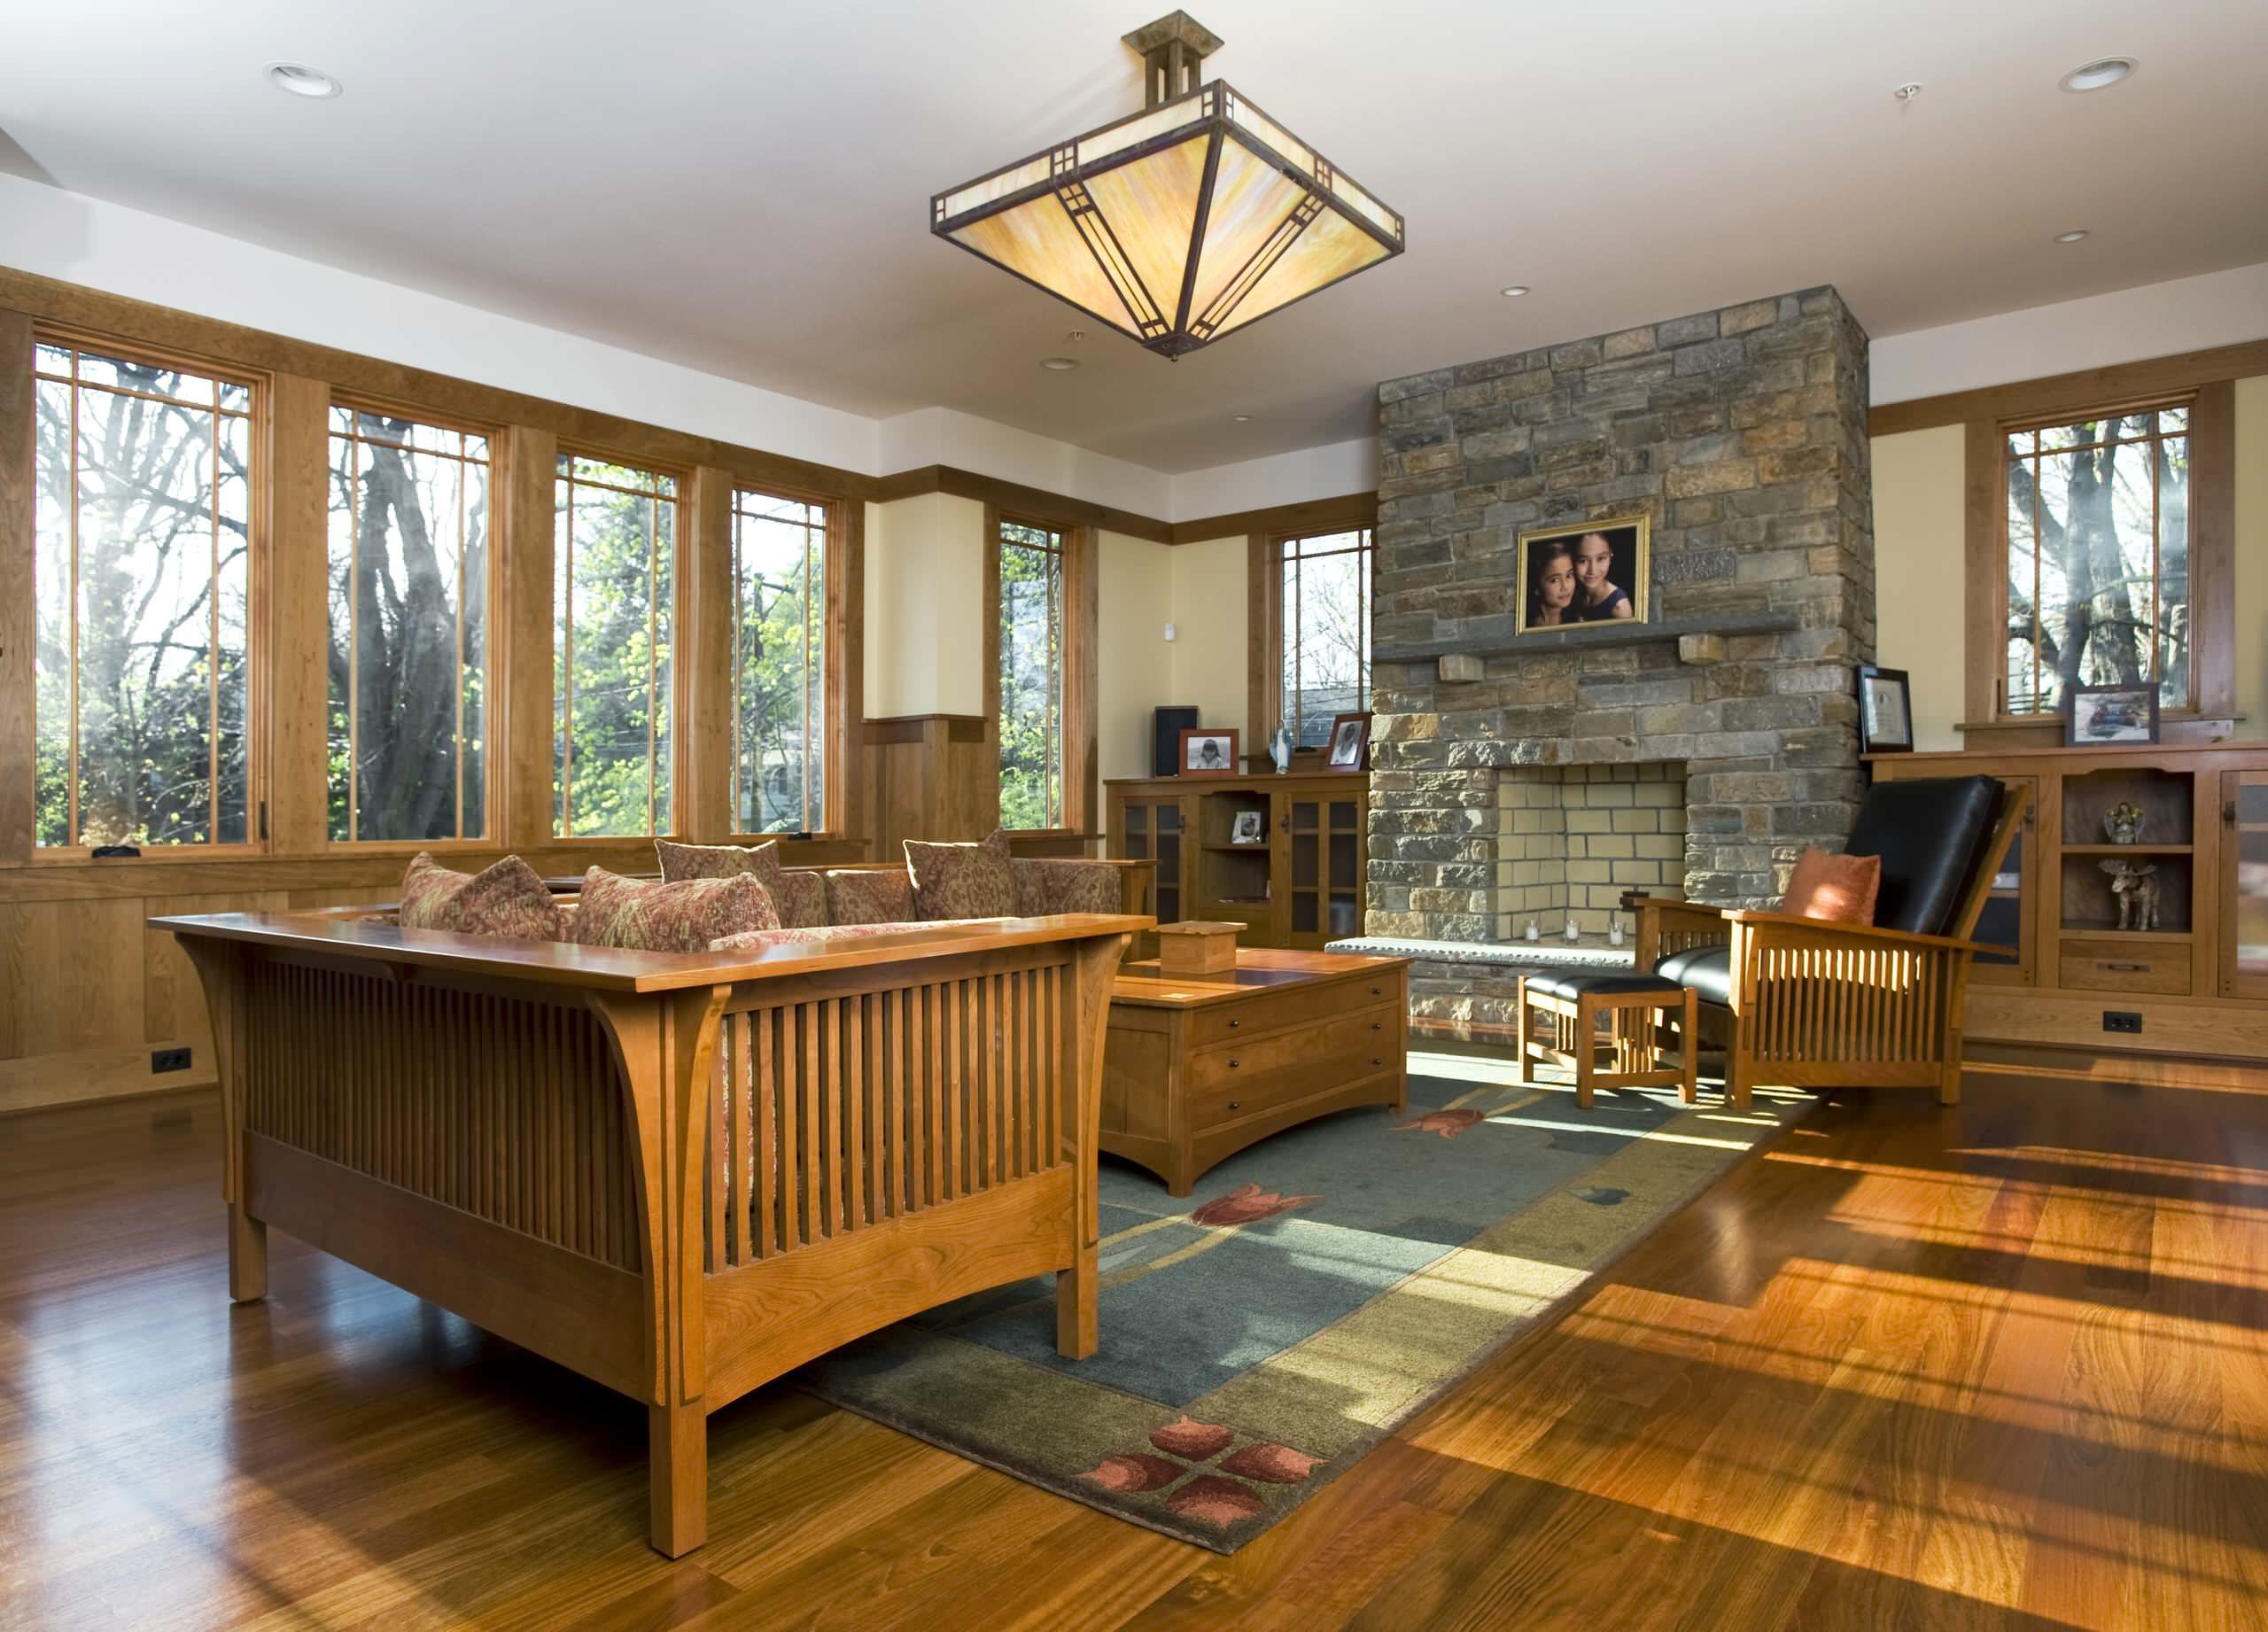 20 Craftsman Style Family Room Designs and Ideas #craftsmanstylehomes